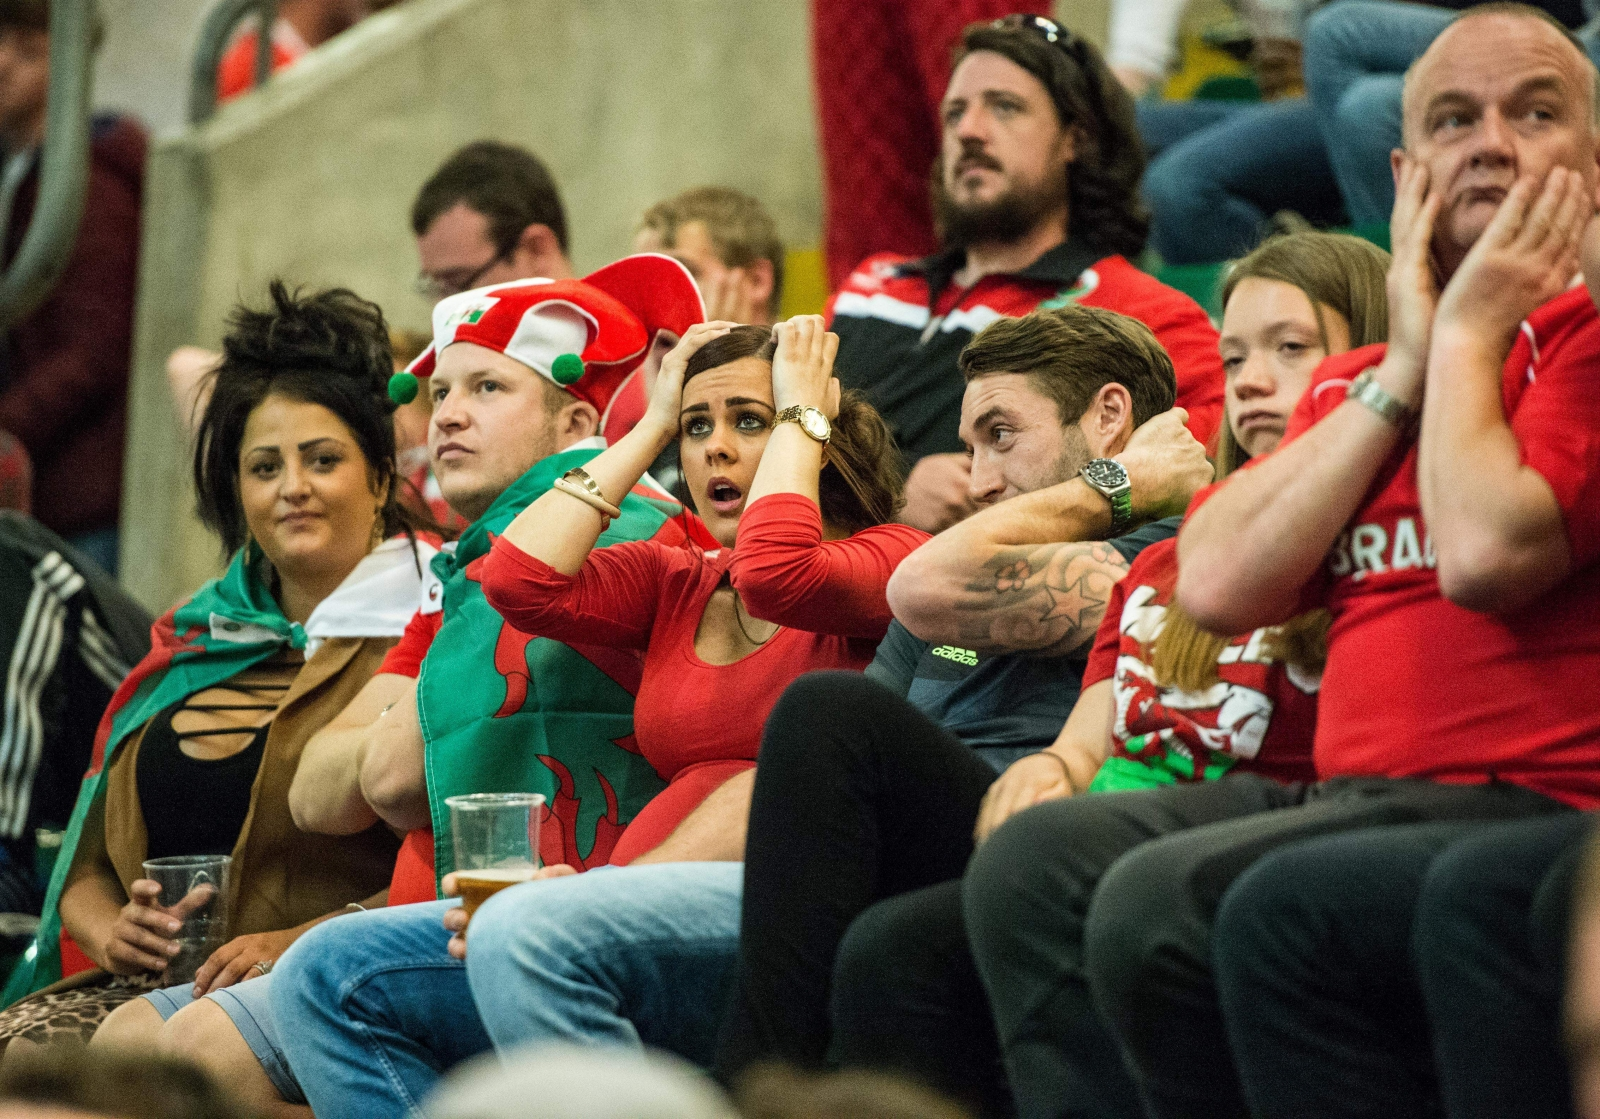 Wales fans can barely watch